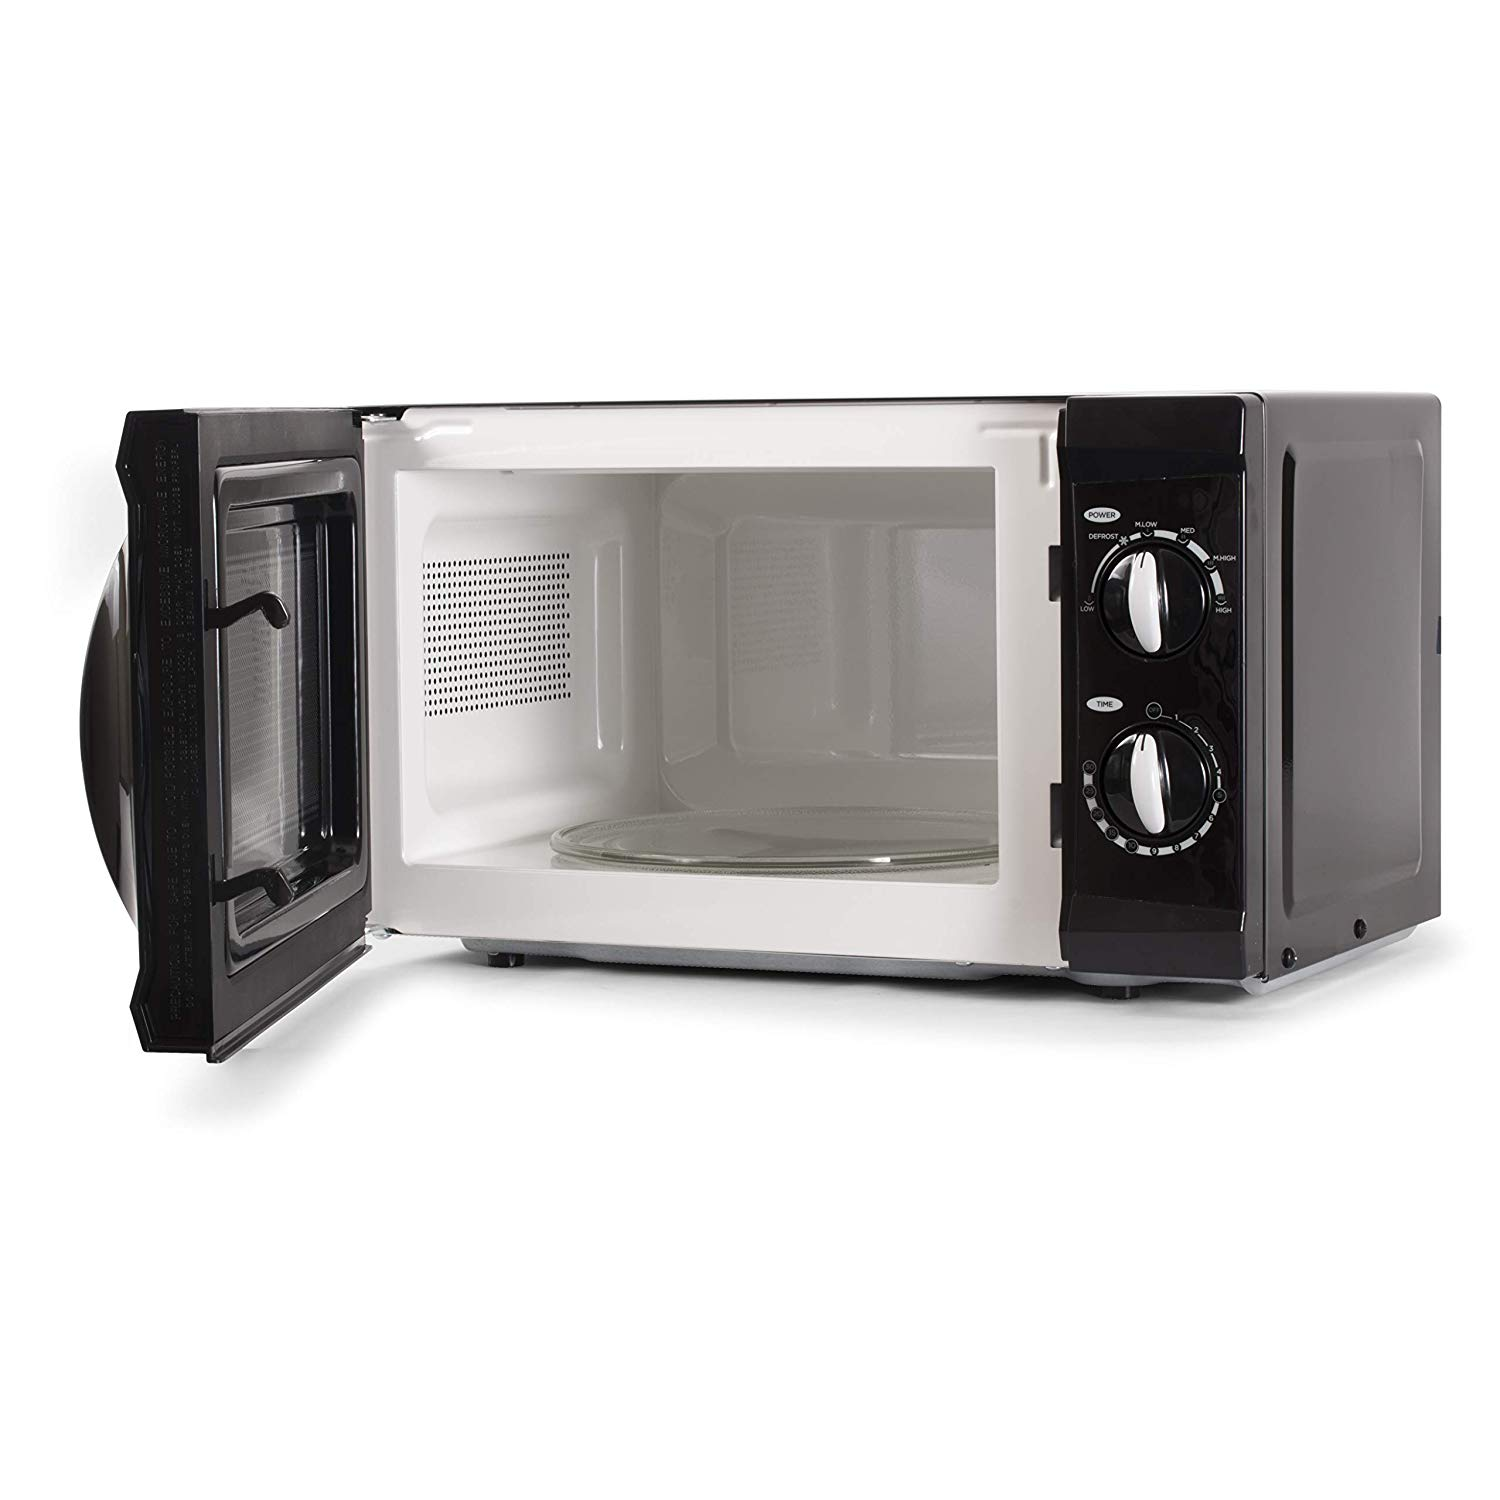 Commercial Chef Chm660b Countertop Counter Top Microwave